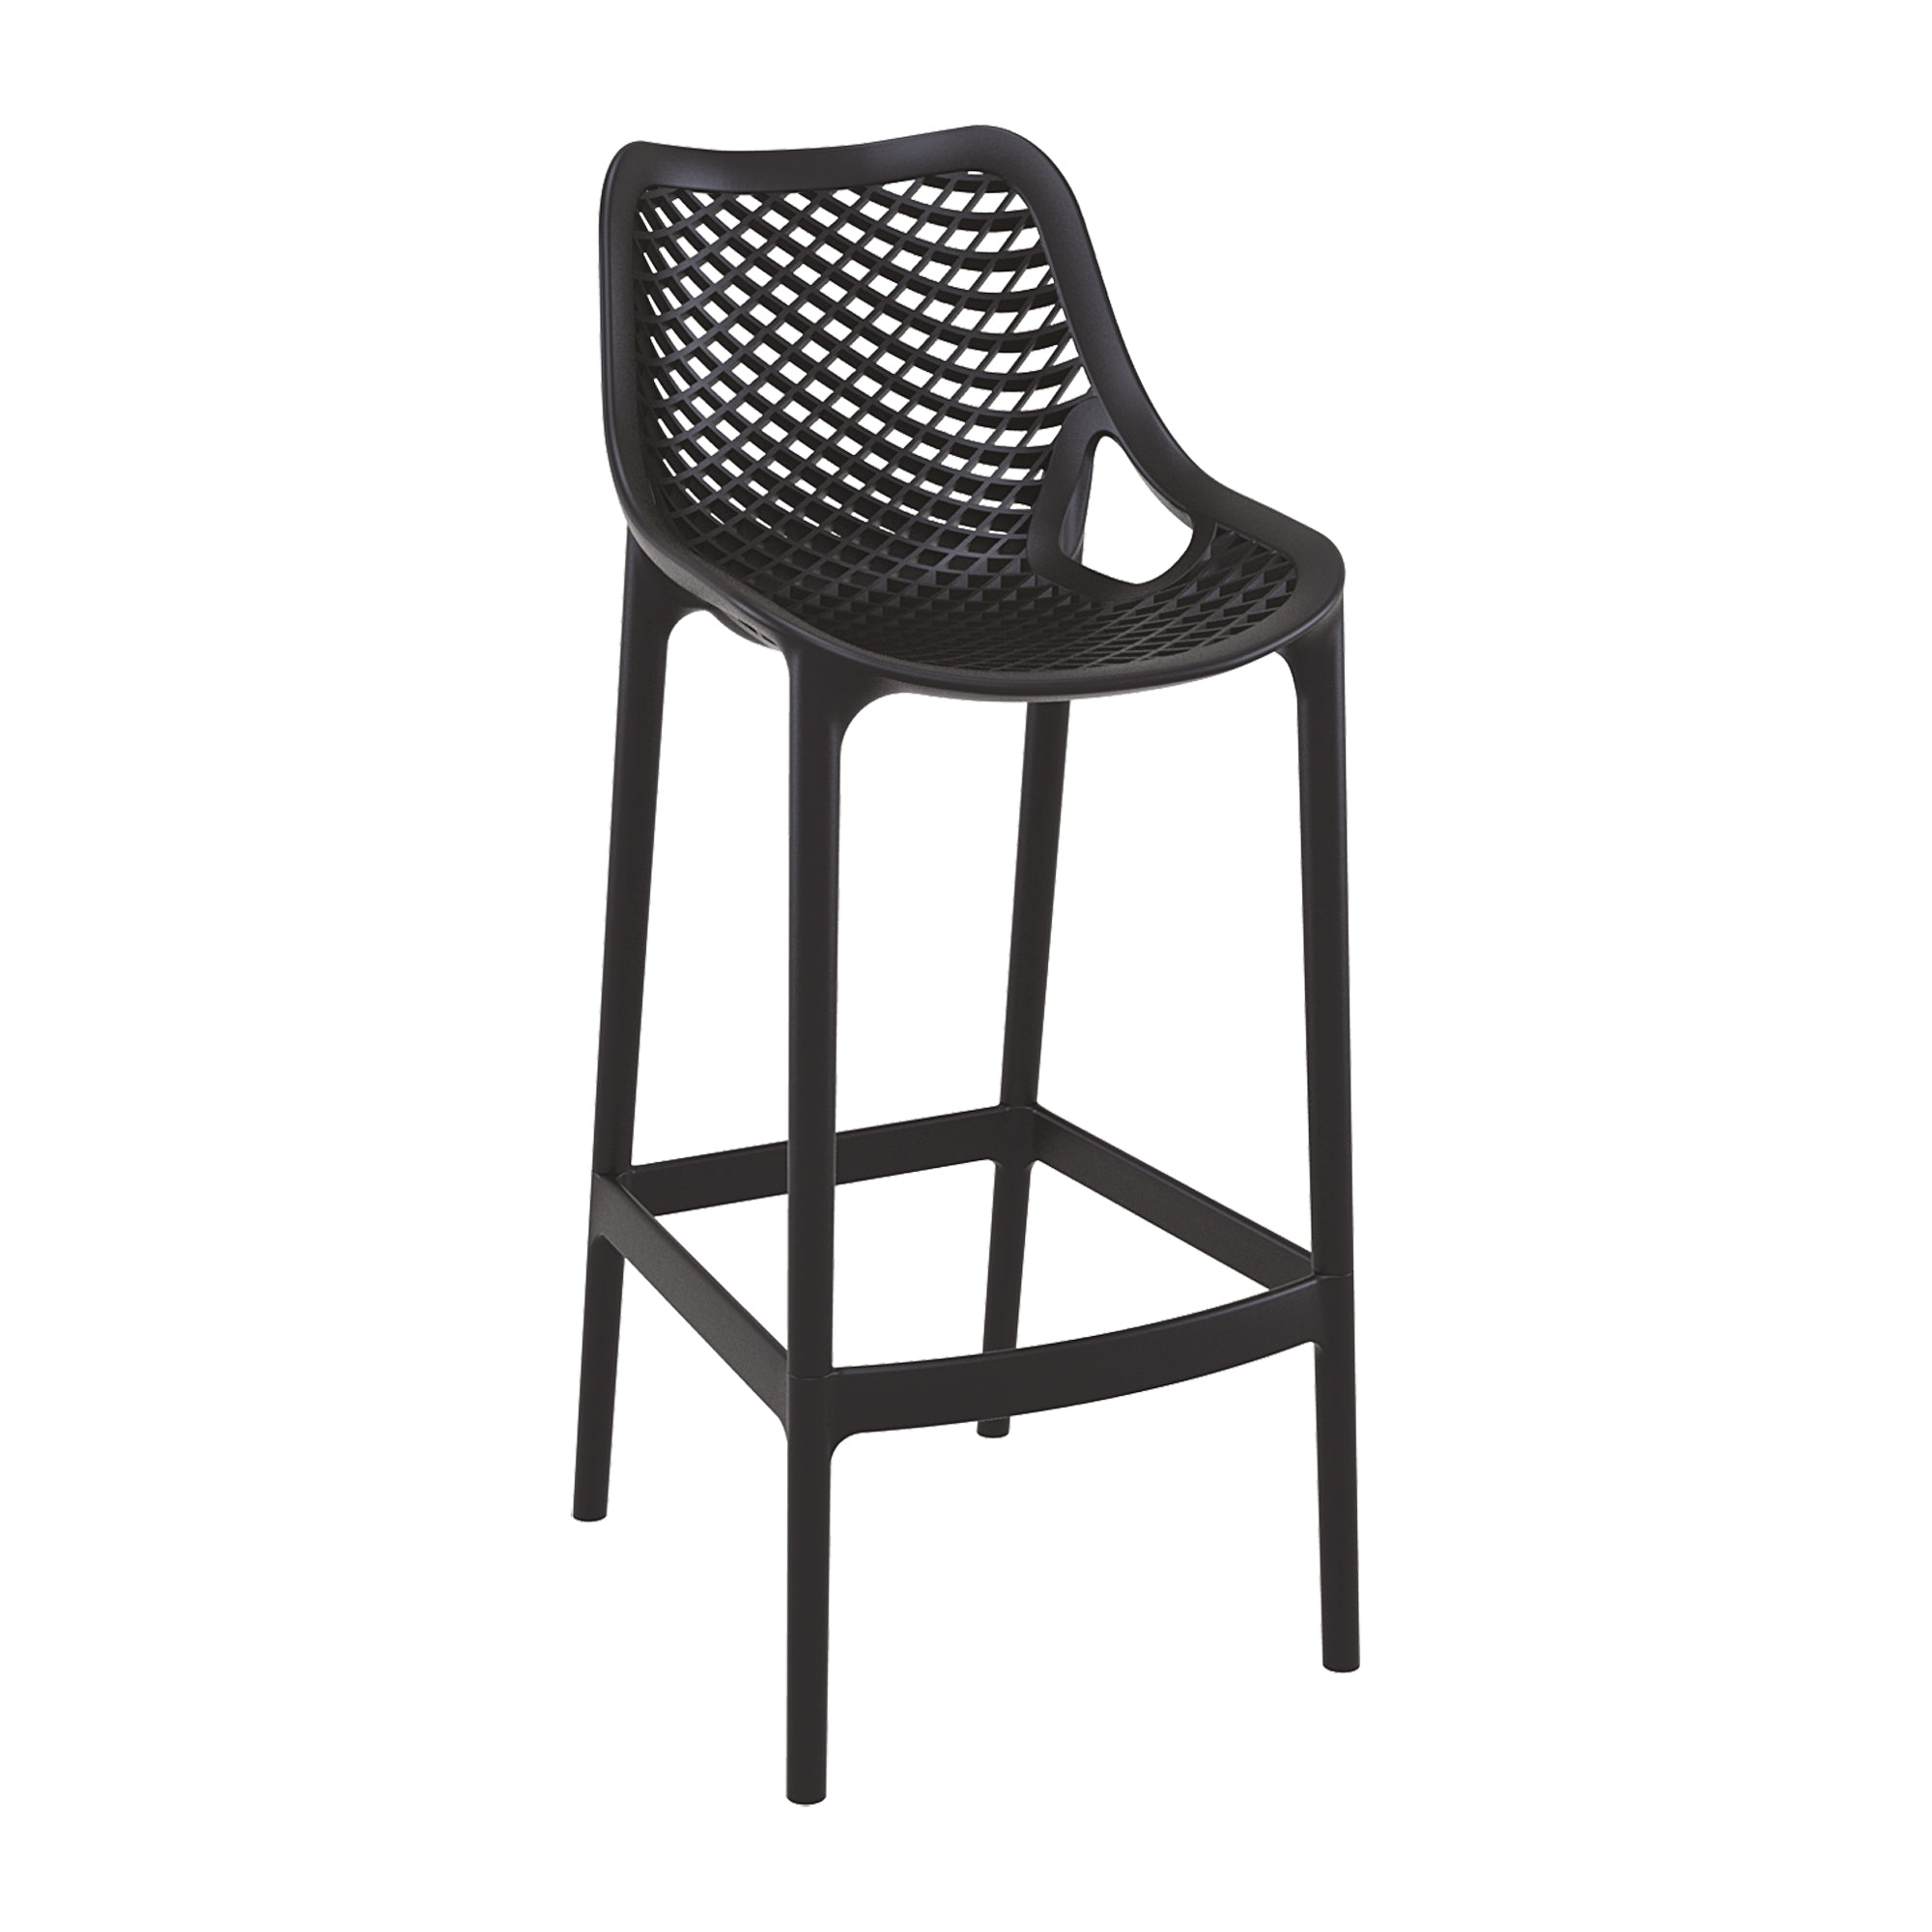 Spring Bar Stool - Black